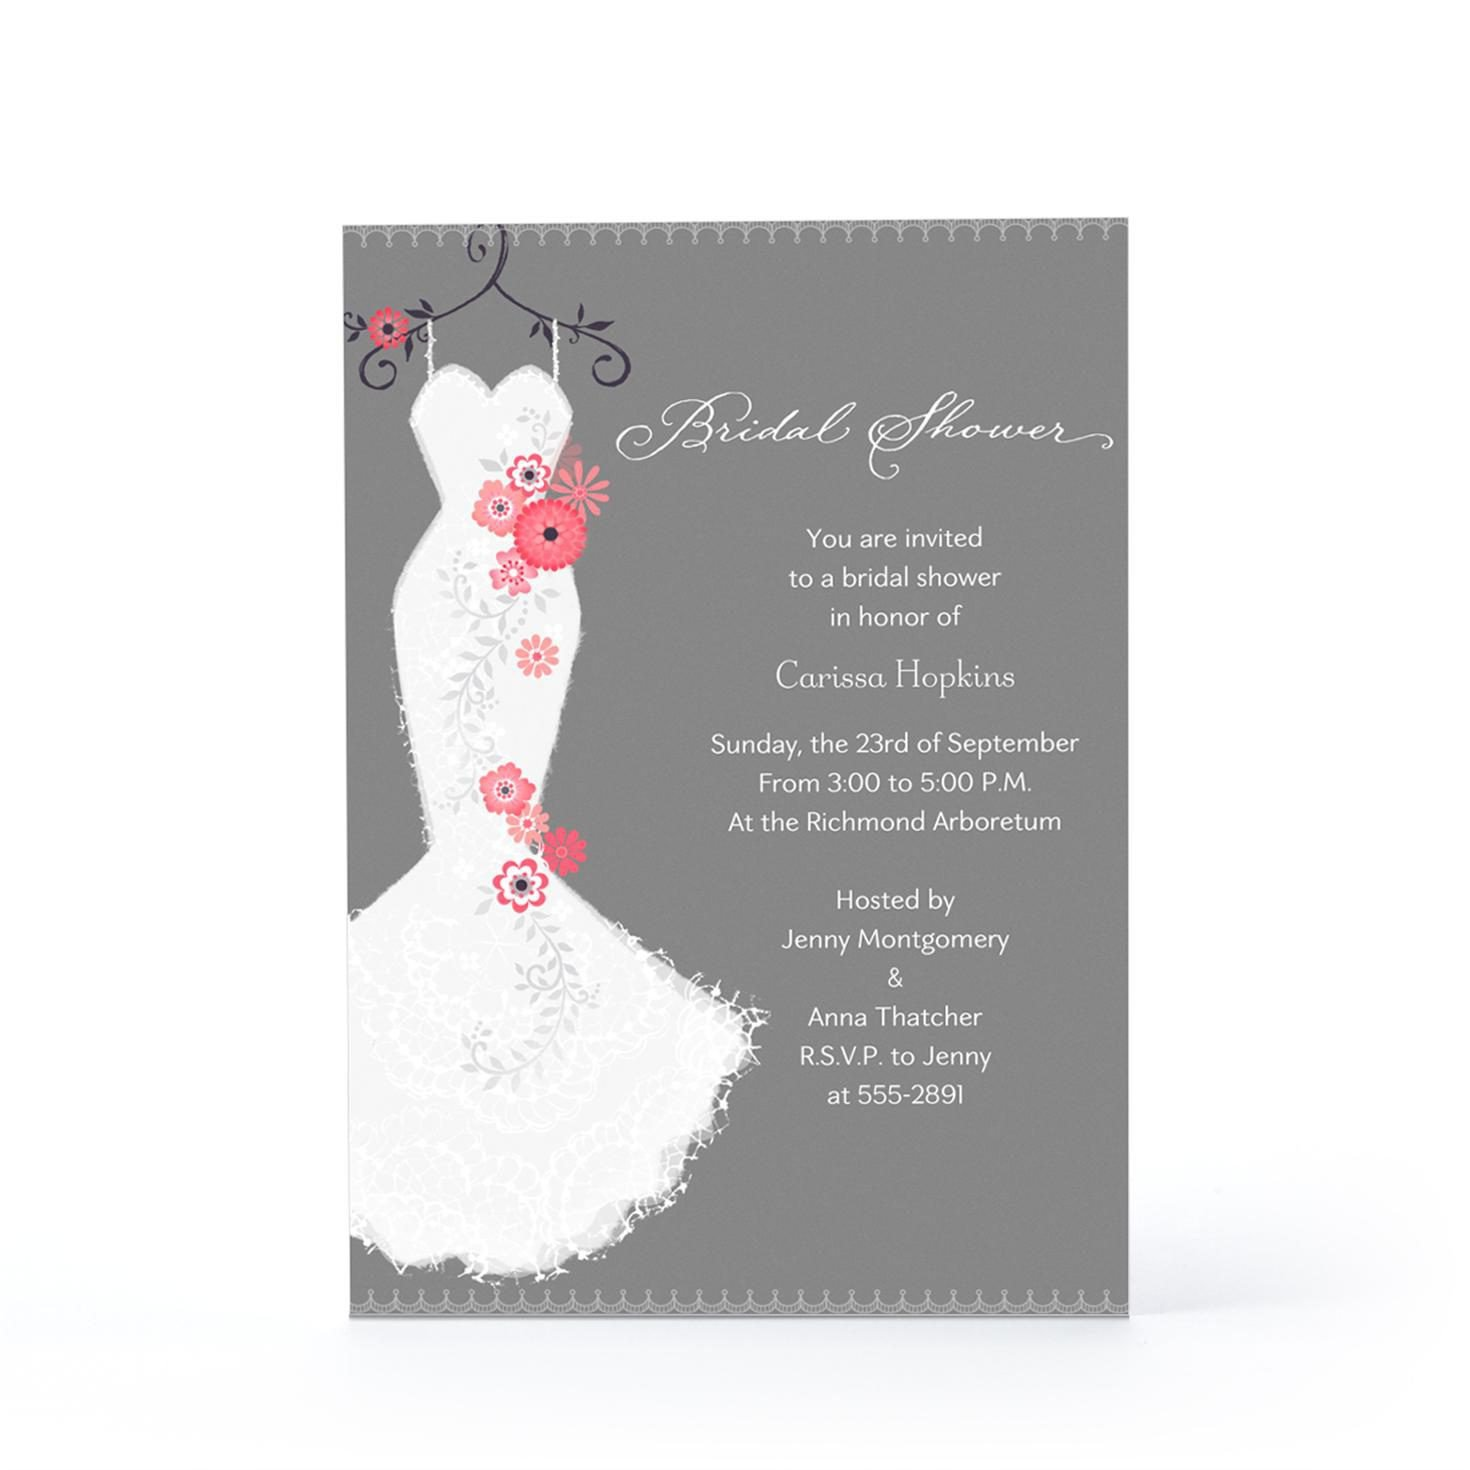 Bridal Shower Card Template Bridal Shower Invite Bridal Shower Invite Wording Card